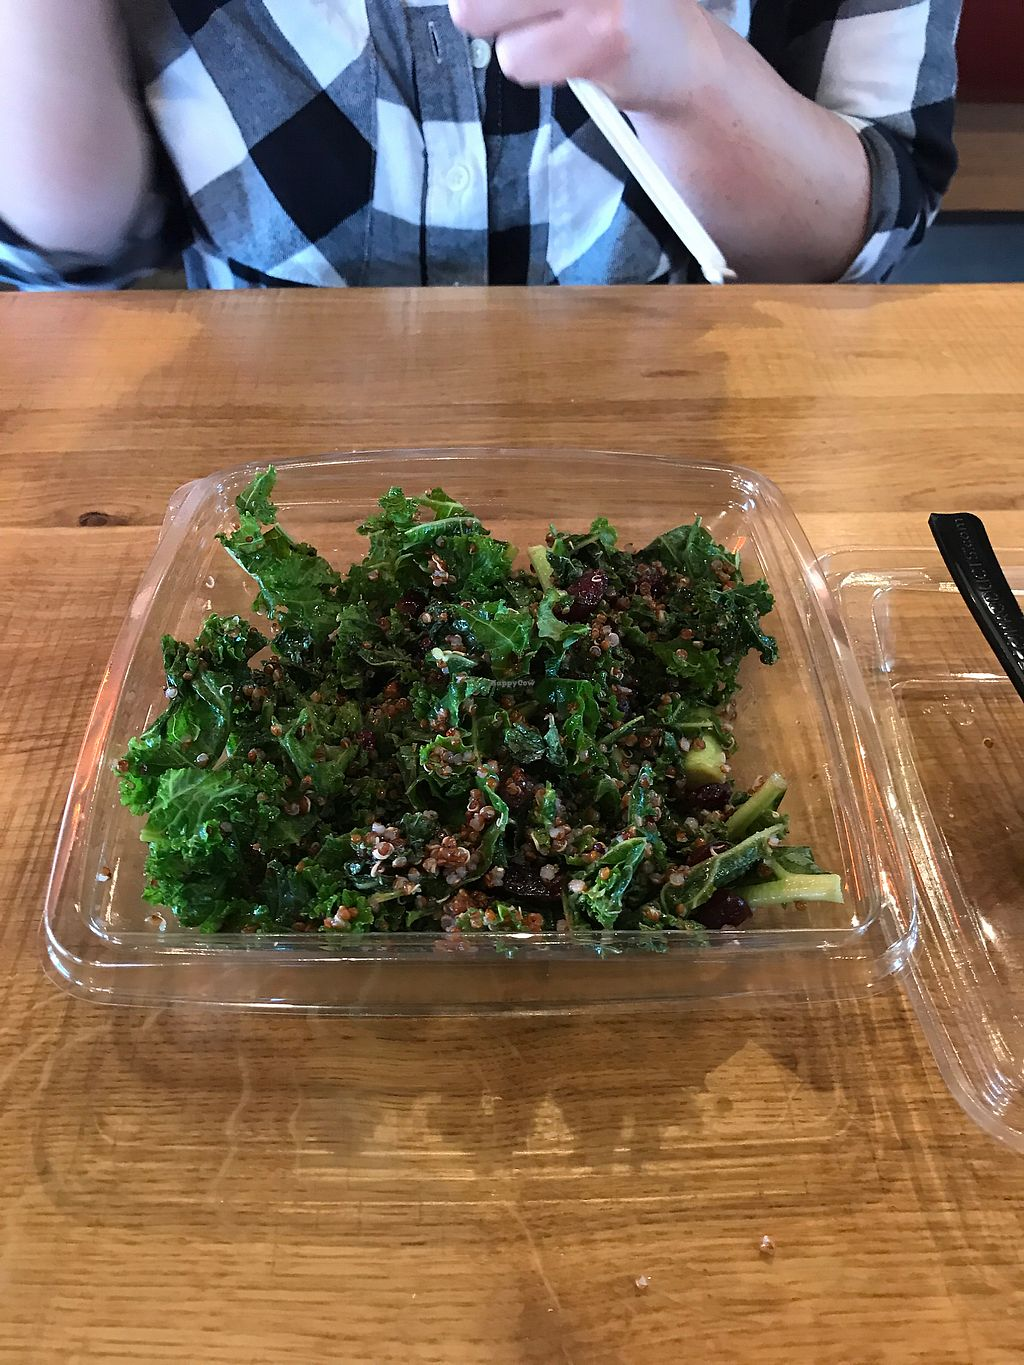 """Photo of Blaze Pizza  by <a href=""""/members/profile/TravisHayes"""">TravisHayes</a> <br/>Kale and quinoa salad <br/> September 16, 2017  - <a href='/contact/abuse/image/87679/305110'>Report</a>"""